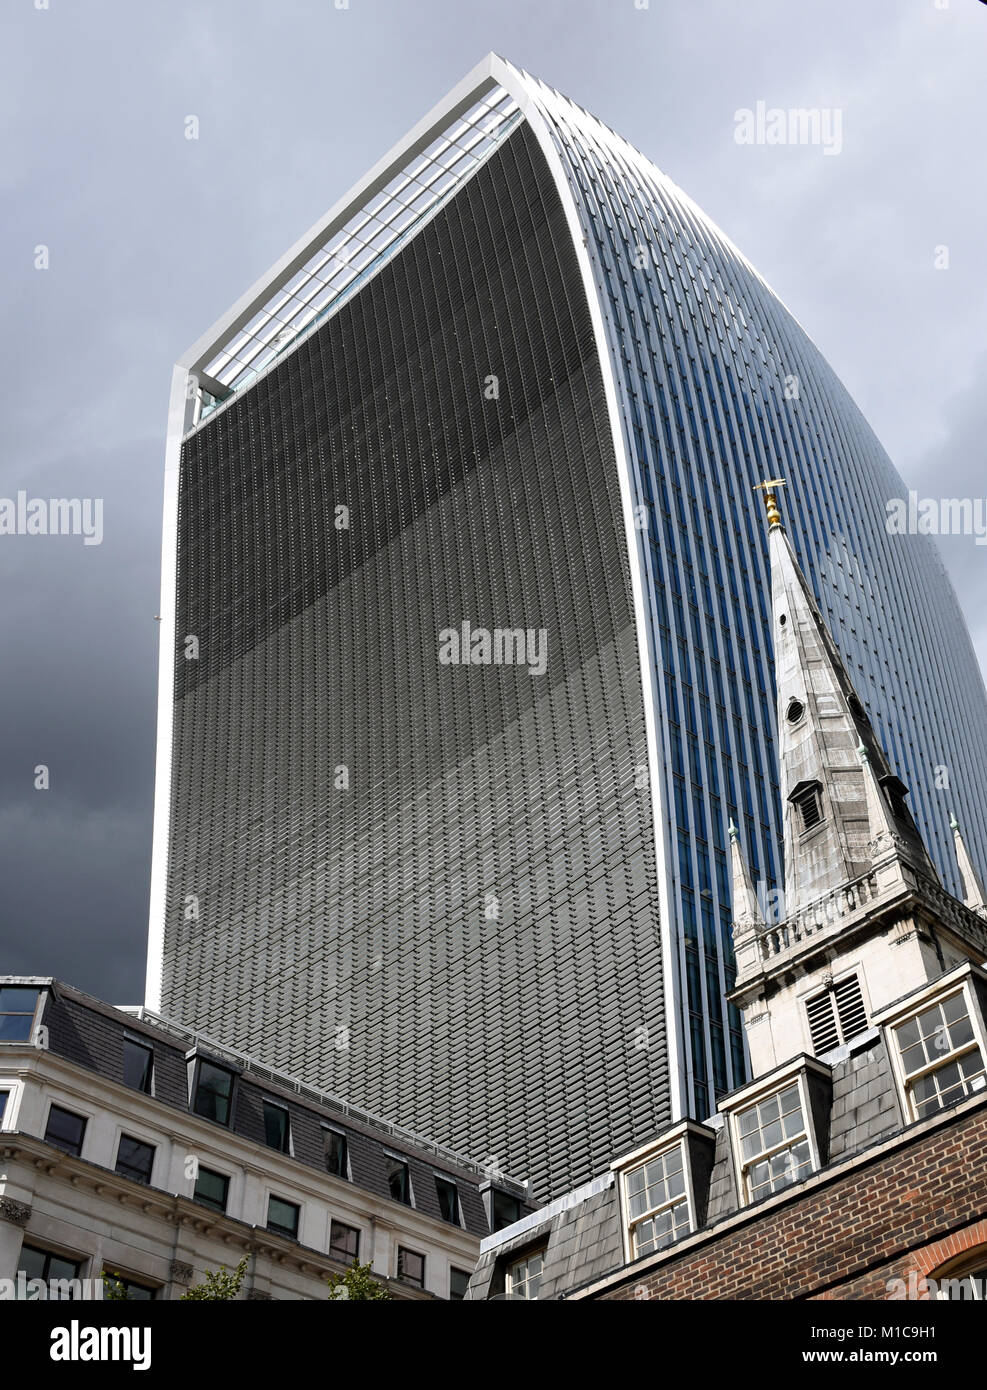 """London, UK. 20th Aug, 2017. View of the office building """"Walkie Talkie"""" in London, England, 20 August 2017. Credit: Stock Photo"""